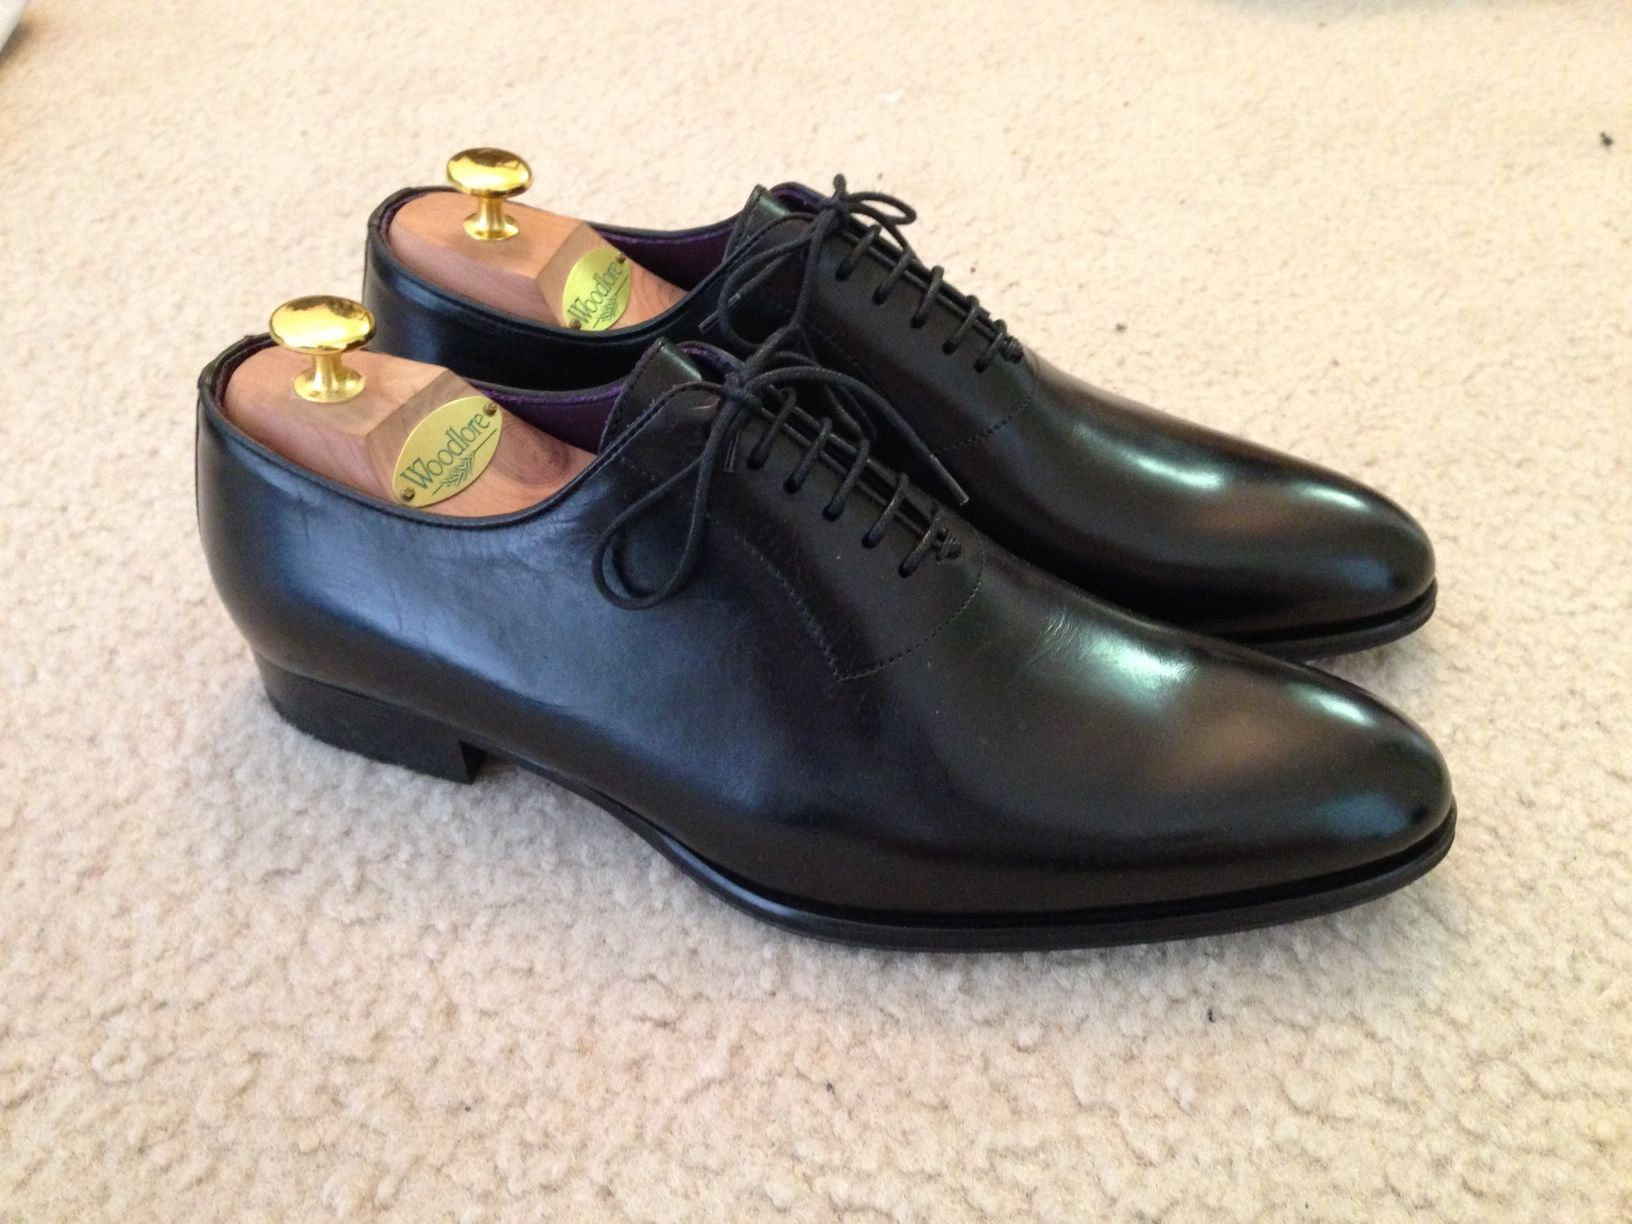 I Really Wish Ae Offered A Similar Shoe On The 8 Last Preferably Know Vernon Is Sort Of Their Foray Into Wholecut Ish Made For Formalwear But Able